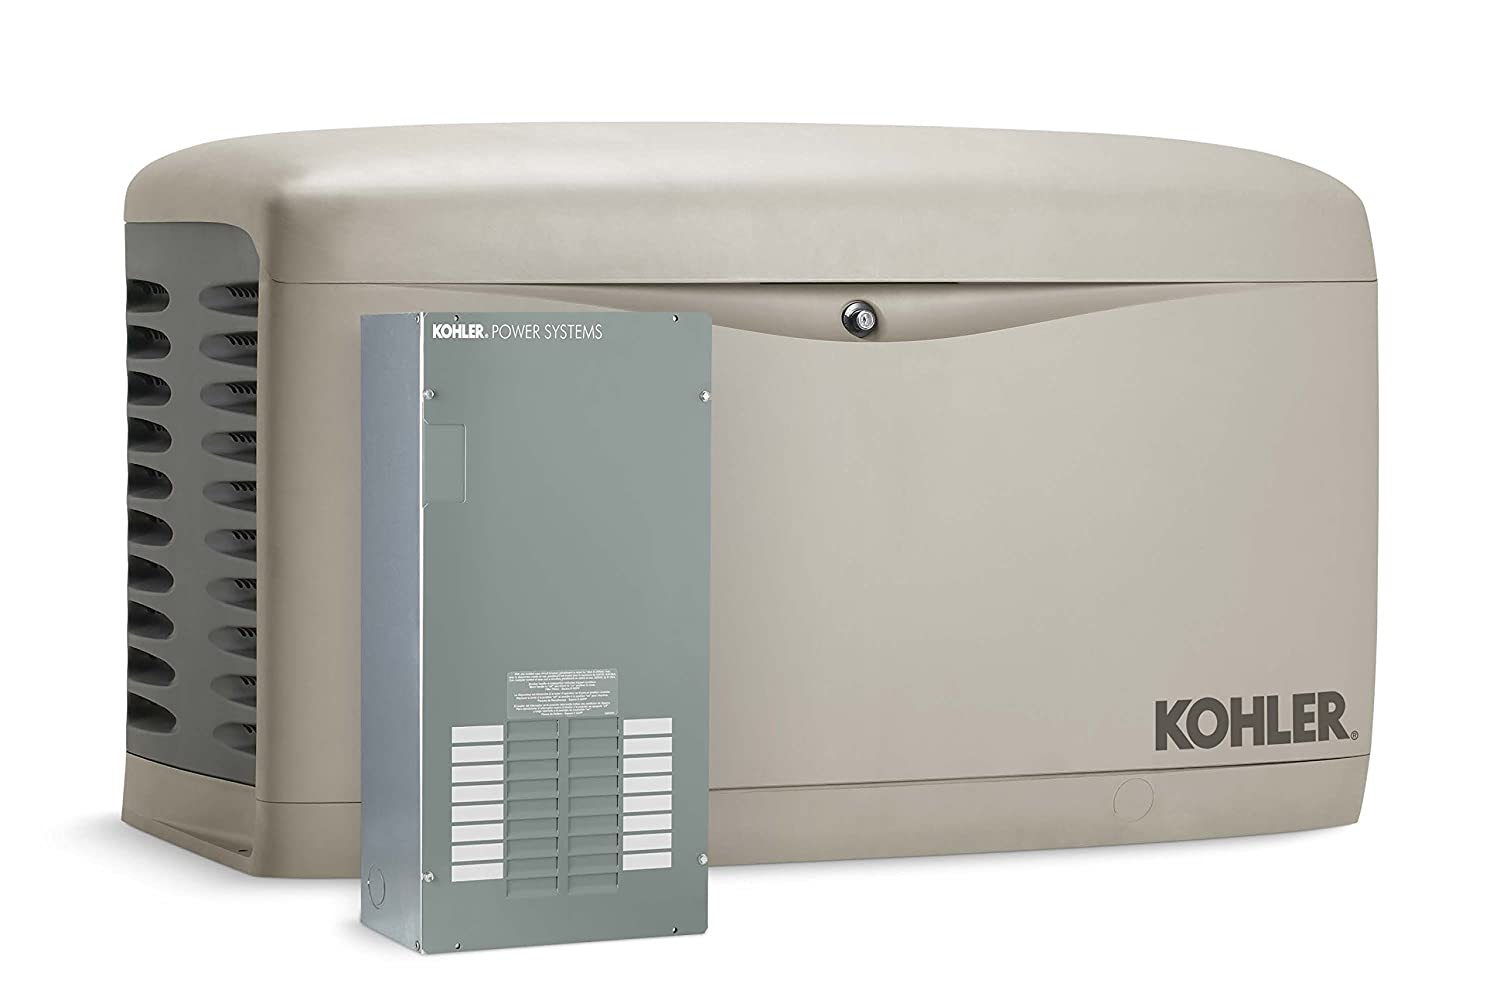 Amazon.com : Kohler 14RESAL-100LC16 14, 000-Watt Air-Cooled Standby  Generator with 100 Amp/16-Circuit Automatic Transfer Switch : Standby Power  Generators ...